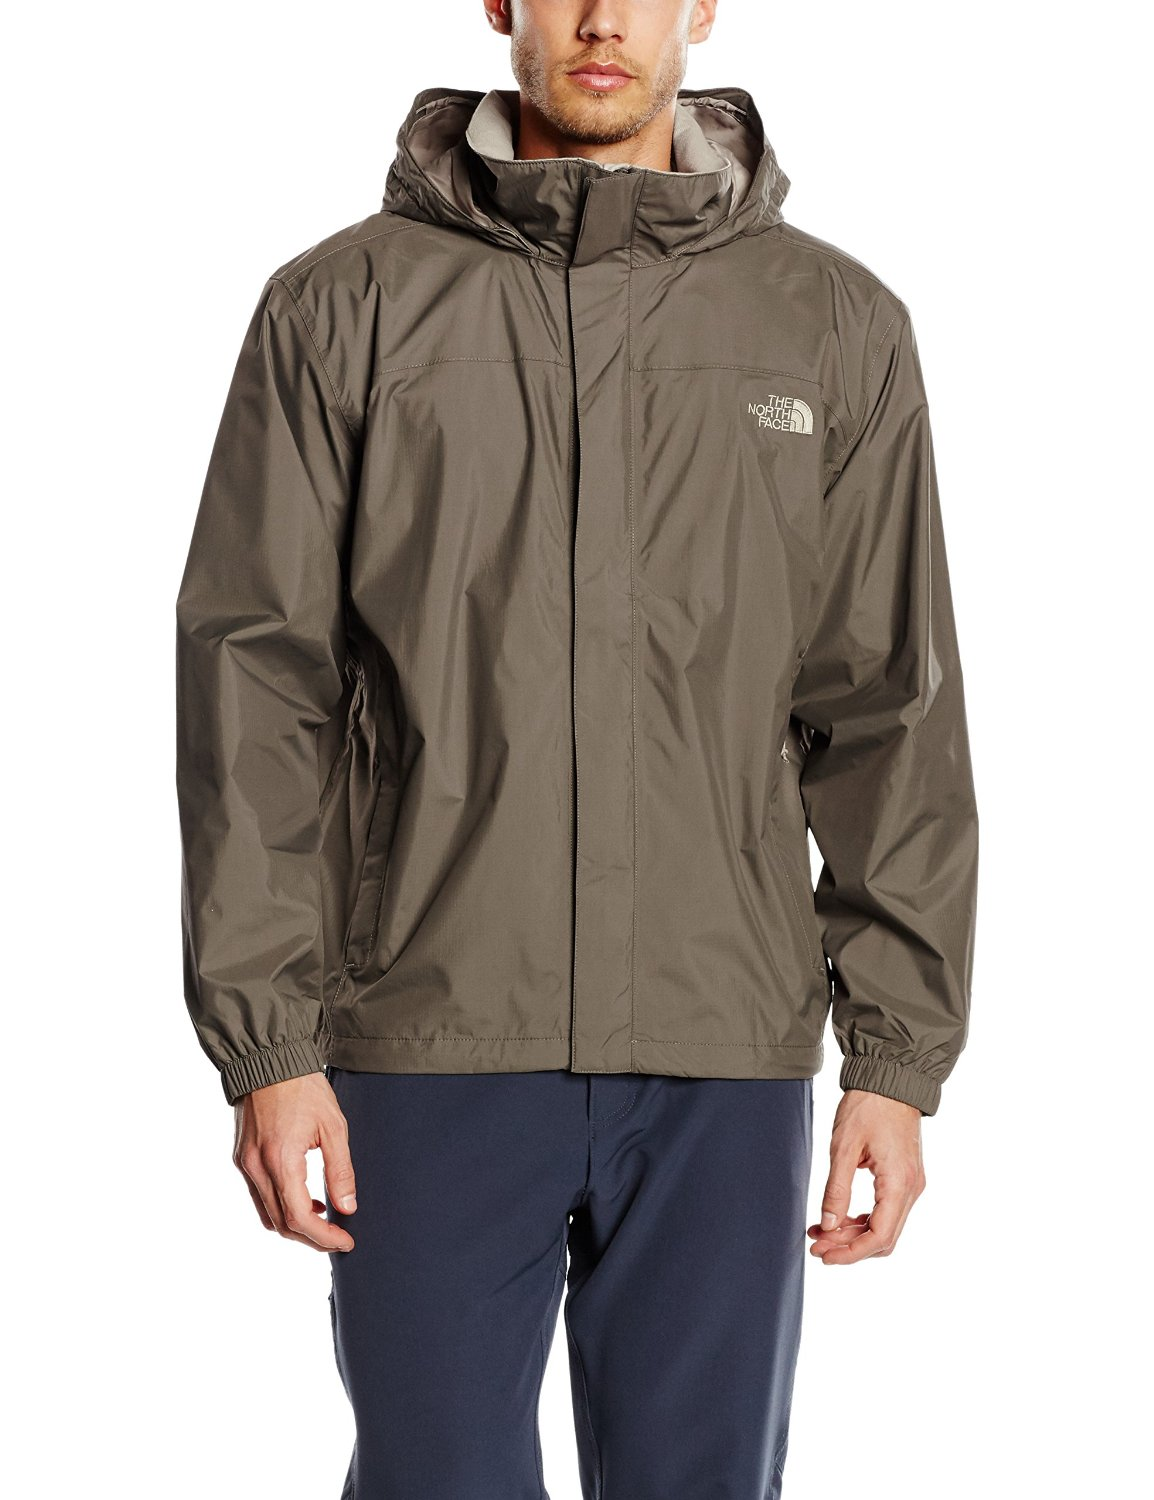 The north face. THE NORTH FACE RESOLVE – GIACCA UOMO 6d6493803483